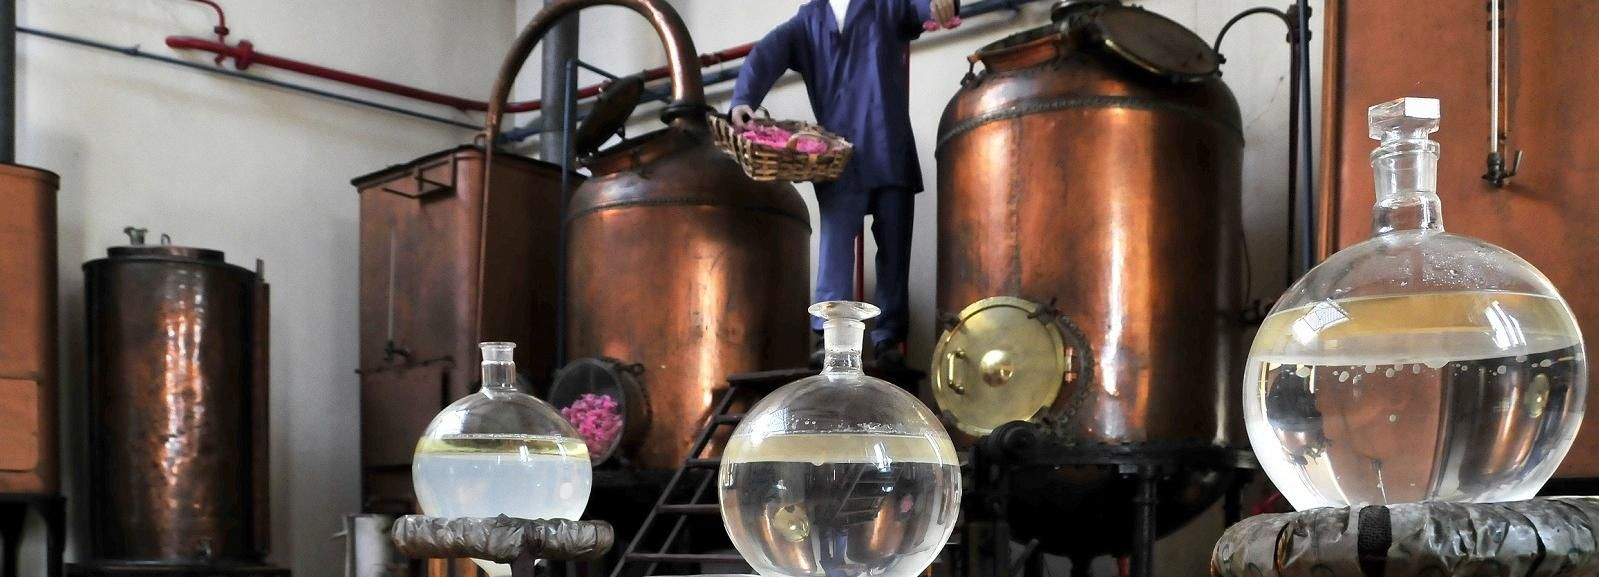 Grasse: Design Your Own Fragrance at a Perfume Factory